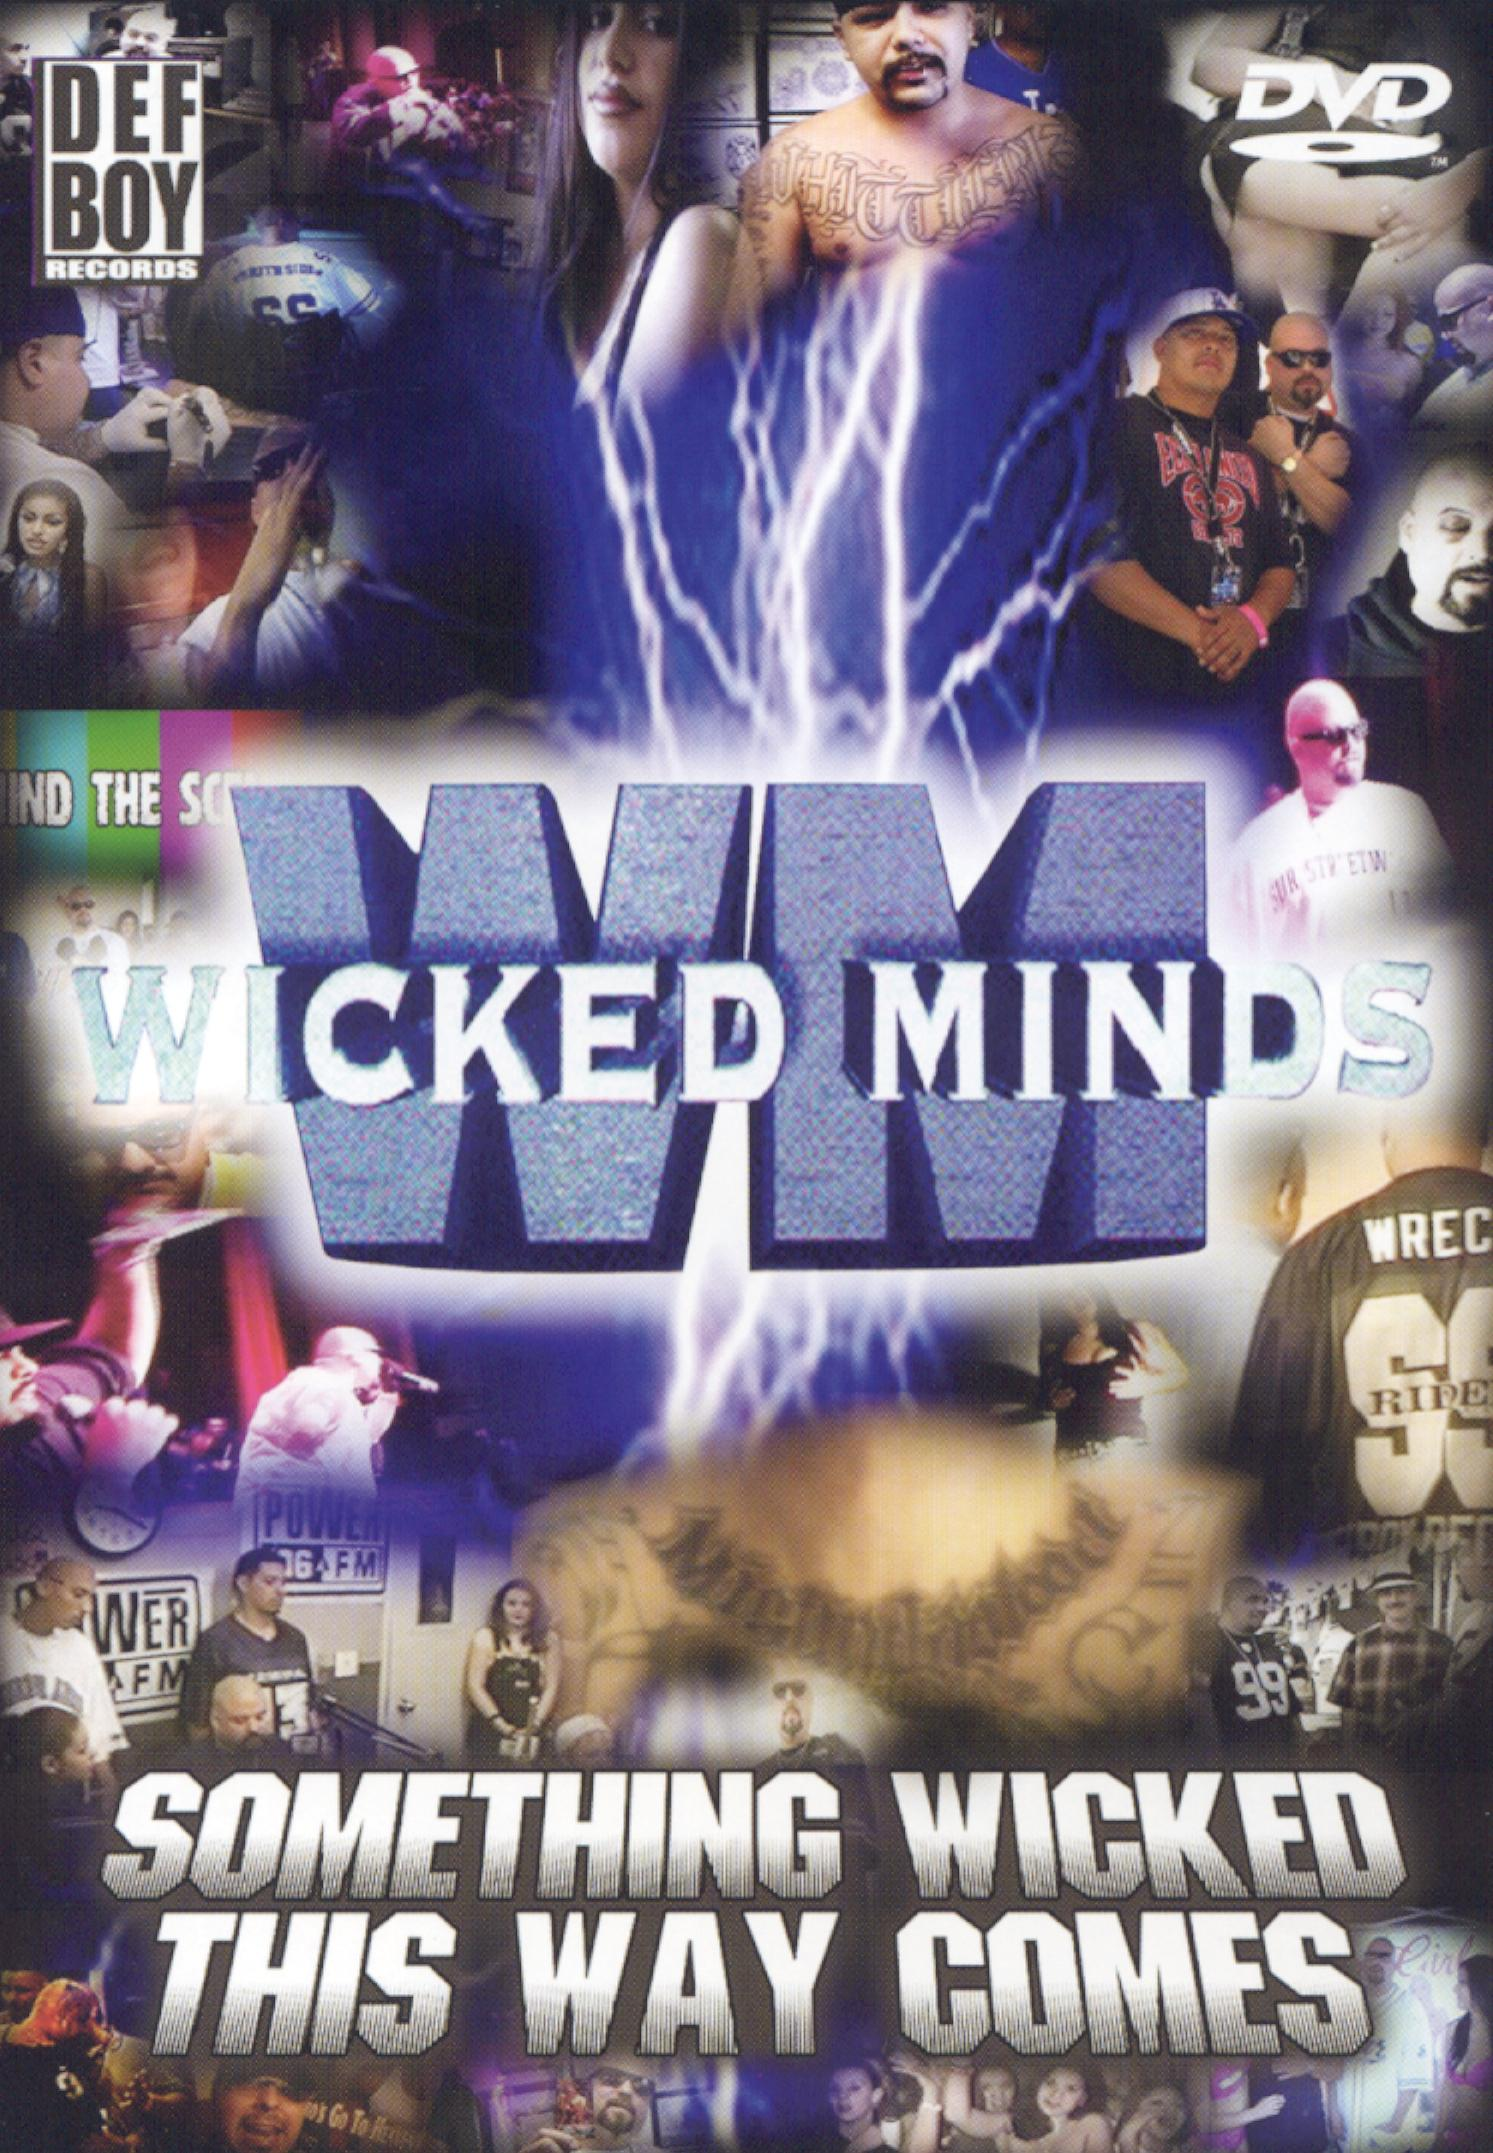 Wicked Minds: Something Wicked This Way Comes